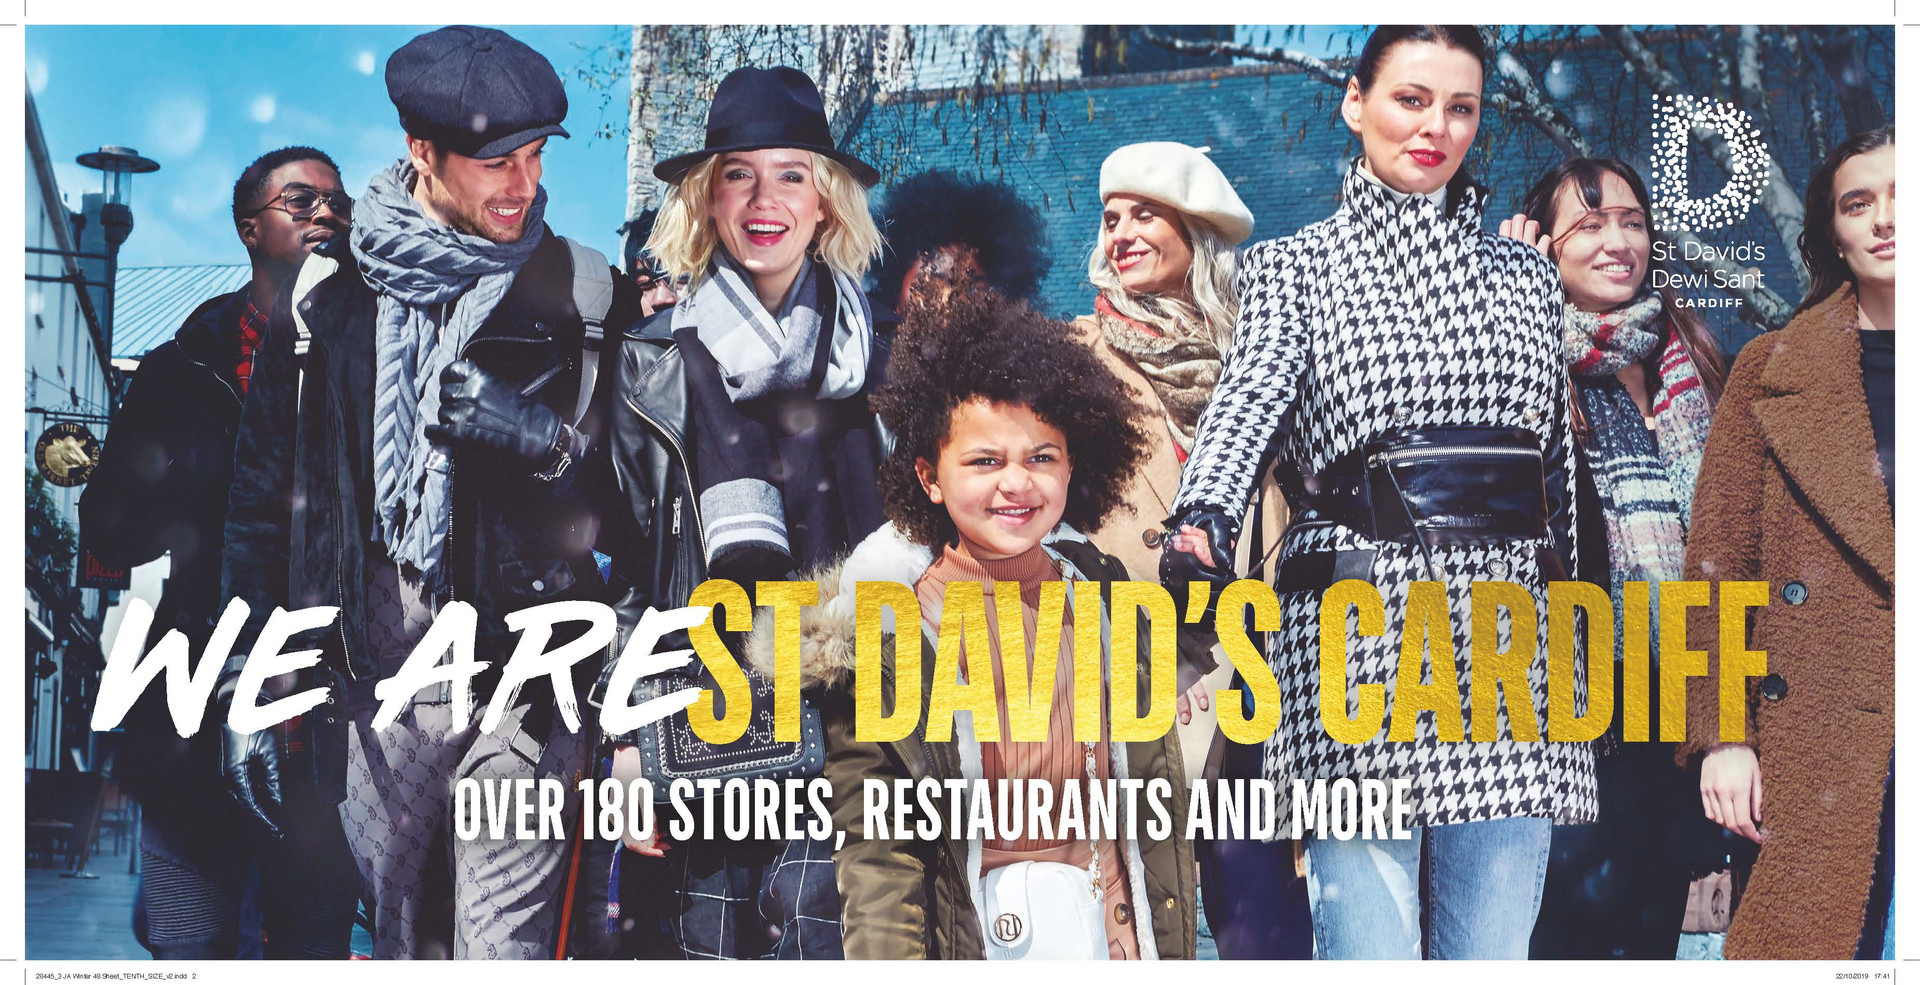 We Are St David's - Christmas Print Campaign - St David's Cardiff